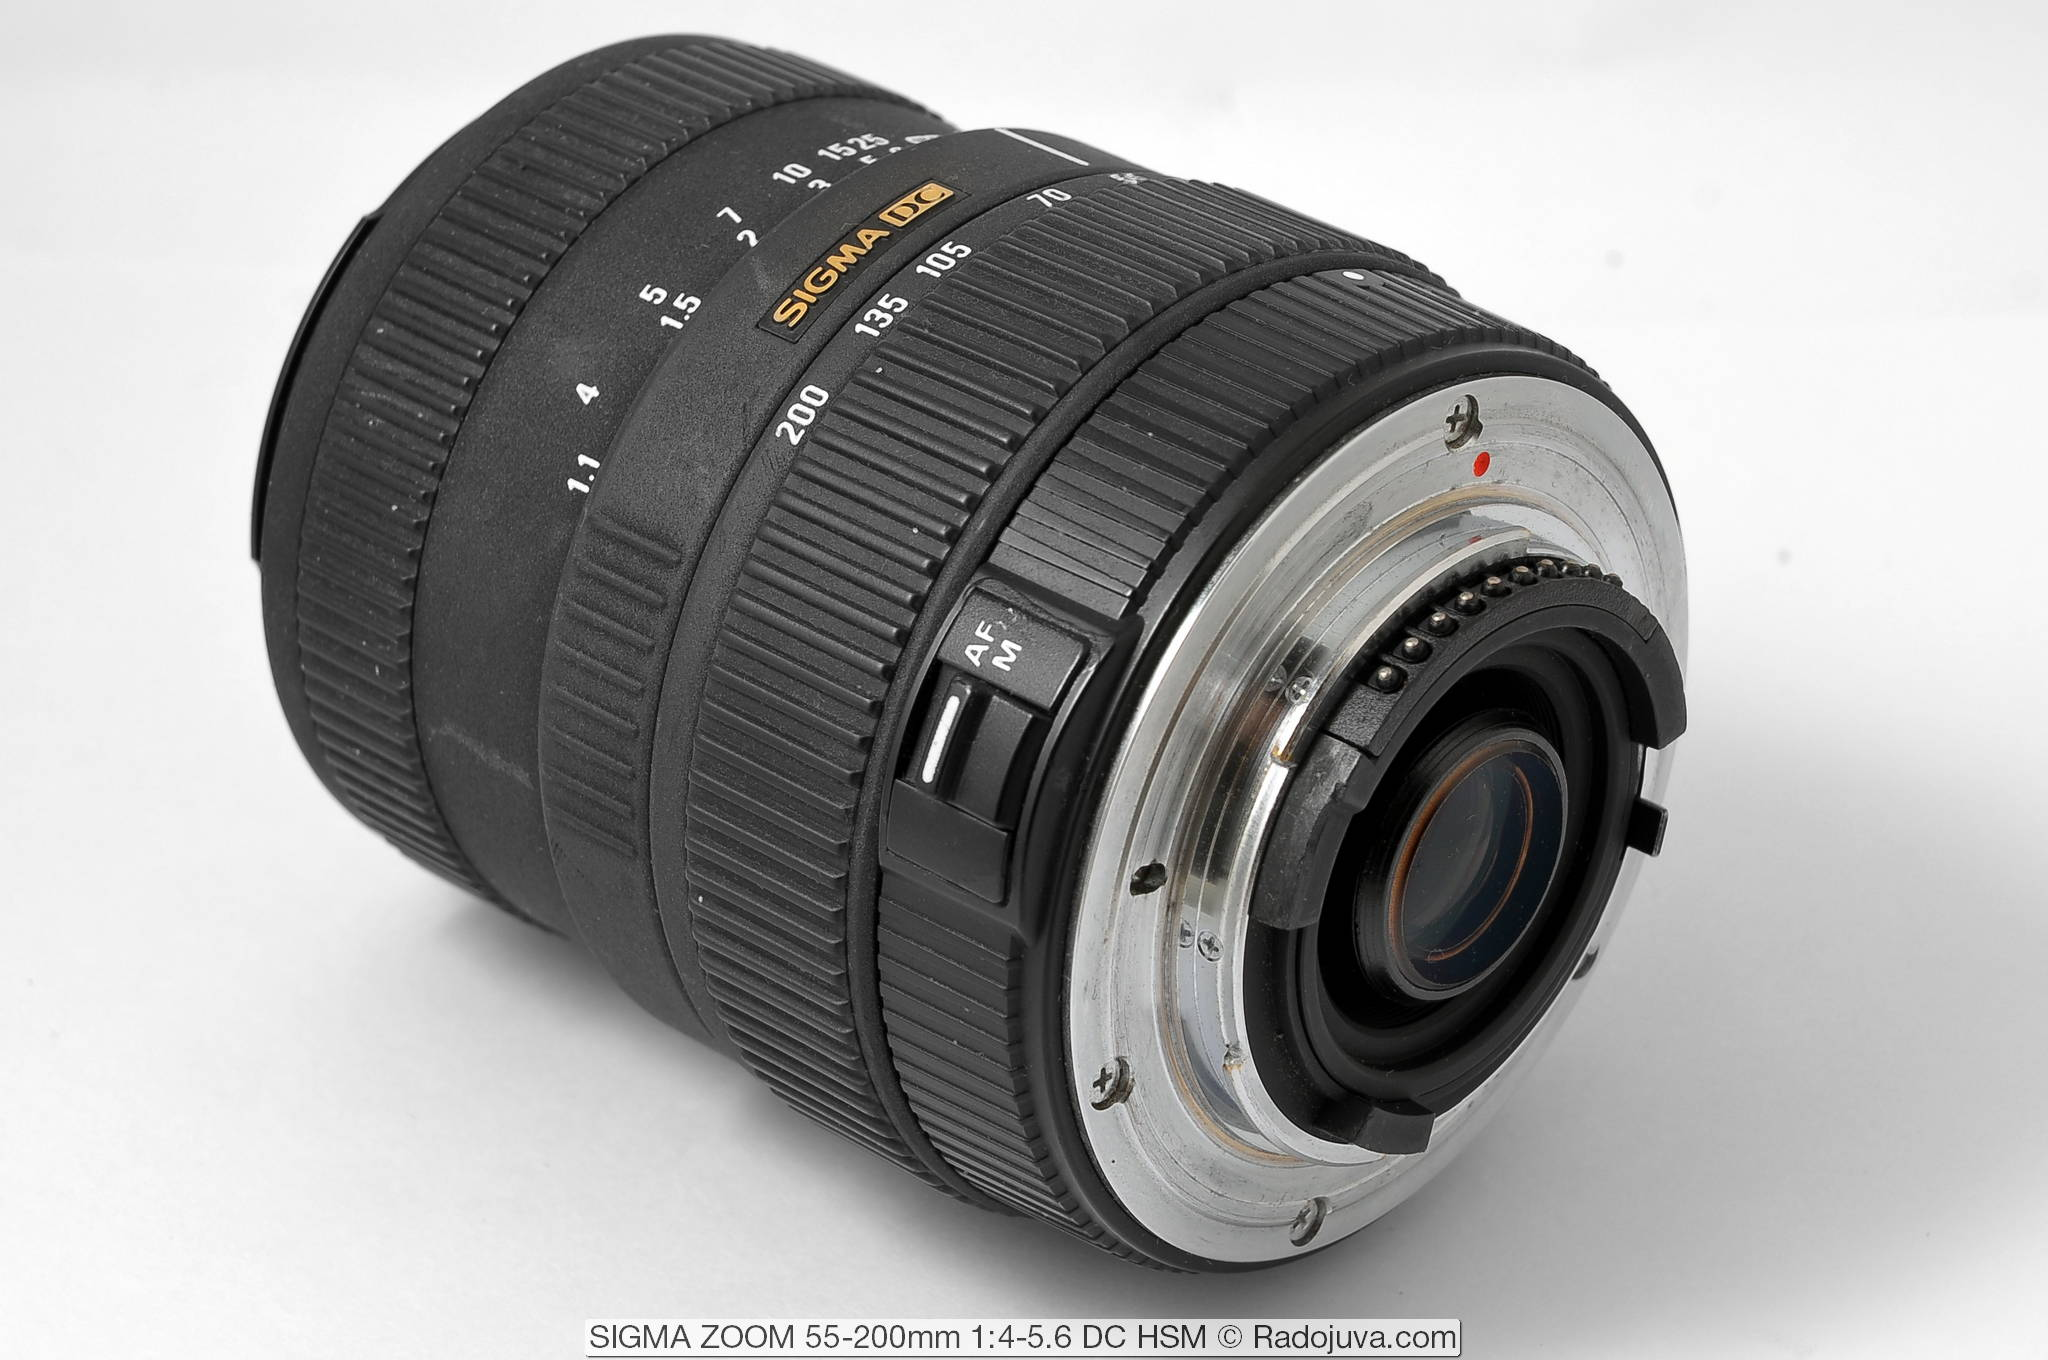 SIGMA ZOOM 55-200mm 1:4-5.6 DC HSM